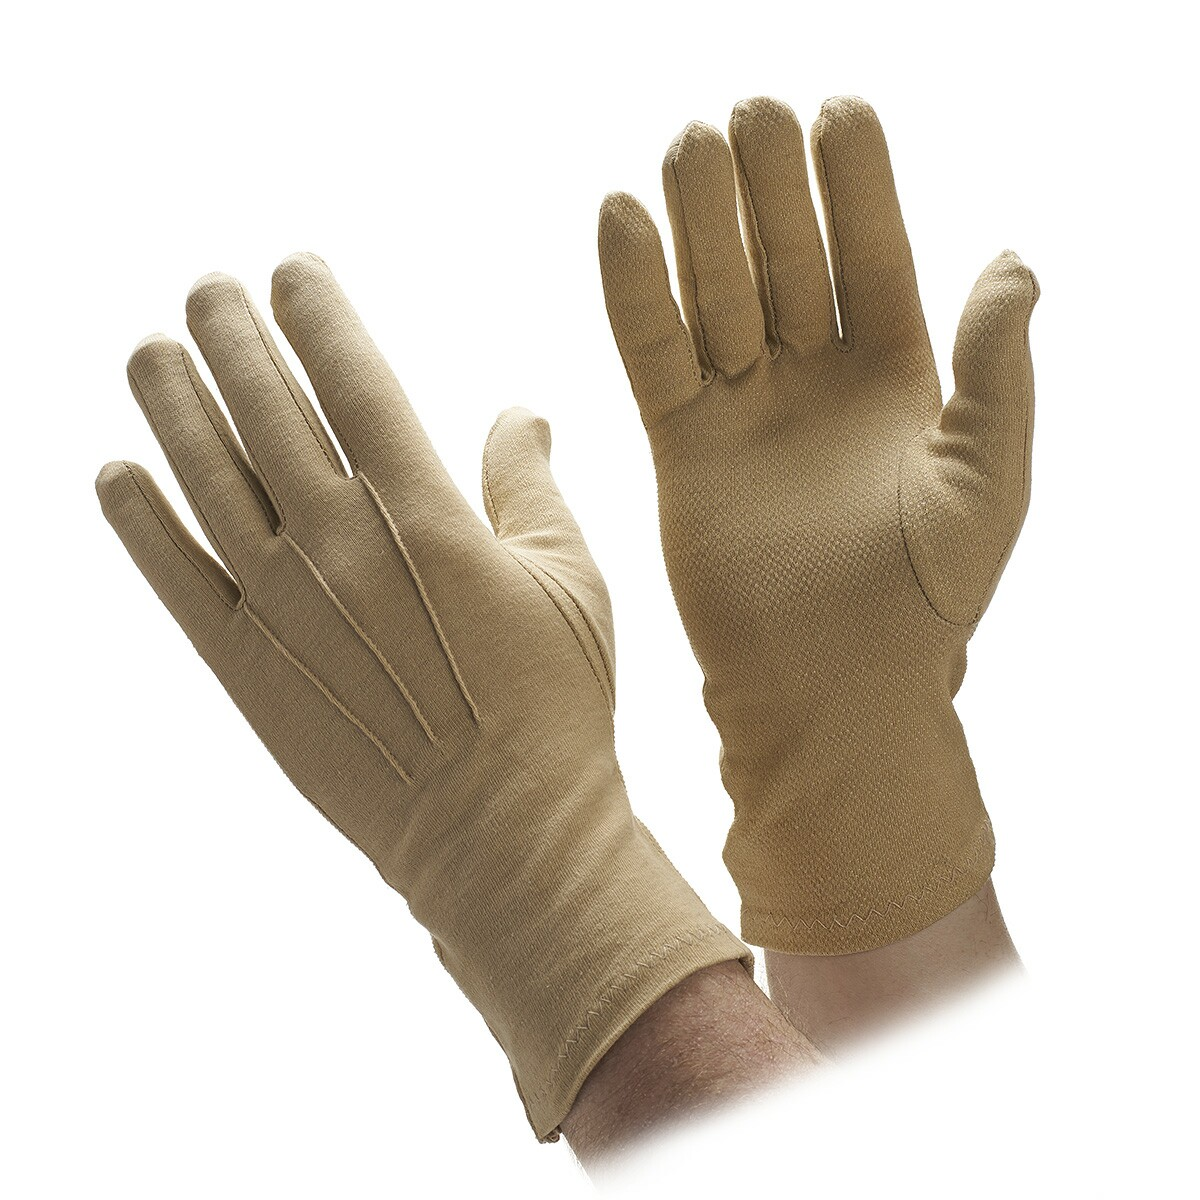 Case Design glove phone case : Extra Long Tan Cotton Beaded Grip Gloves : Food Service Gloves ...